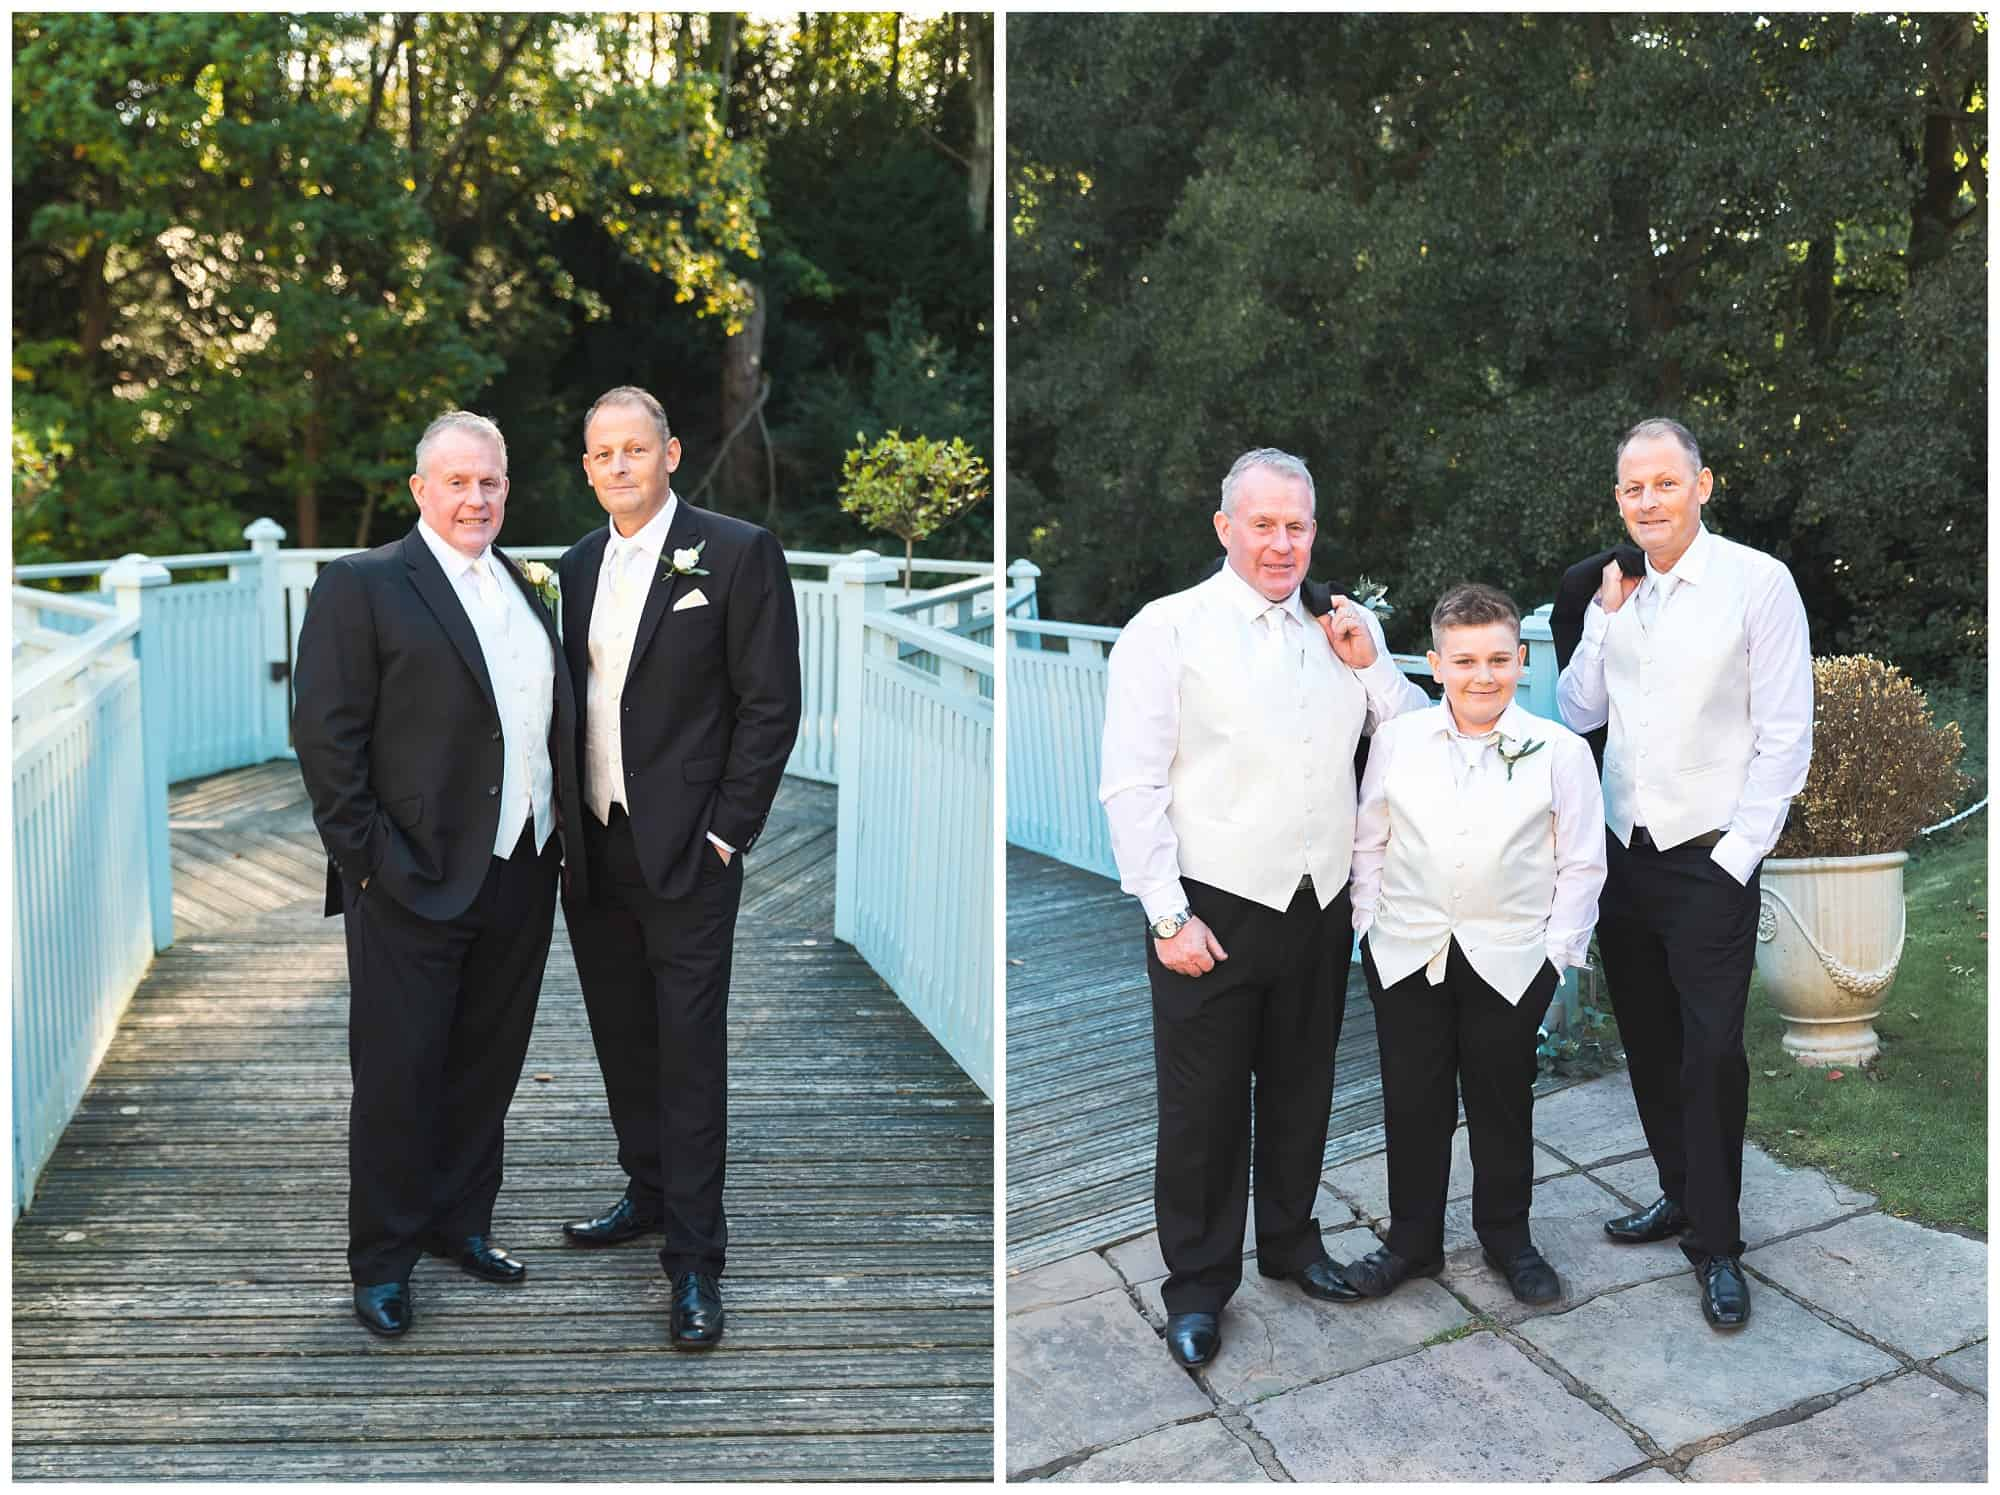 Whitley Hall Hotel Wedding - groomsmen